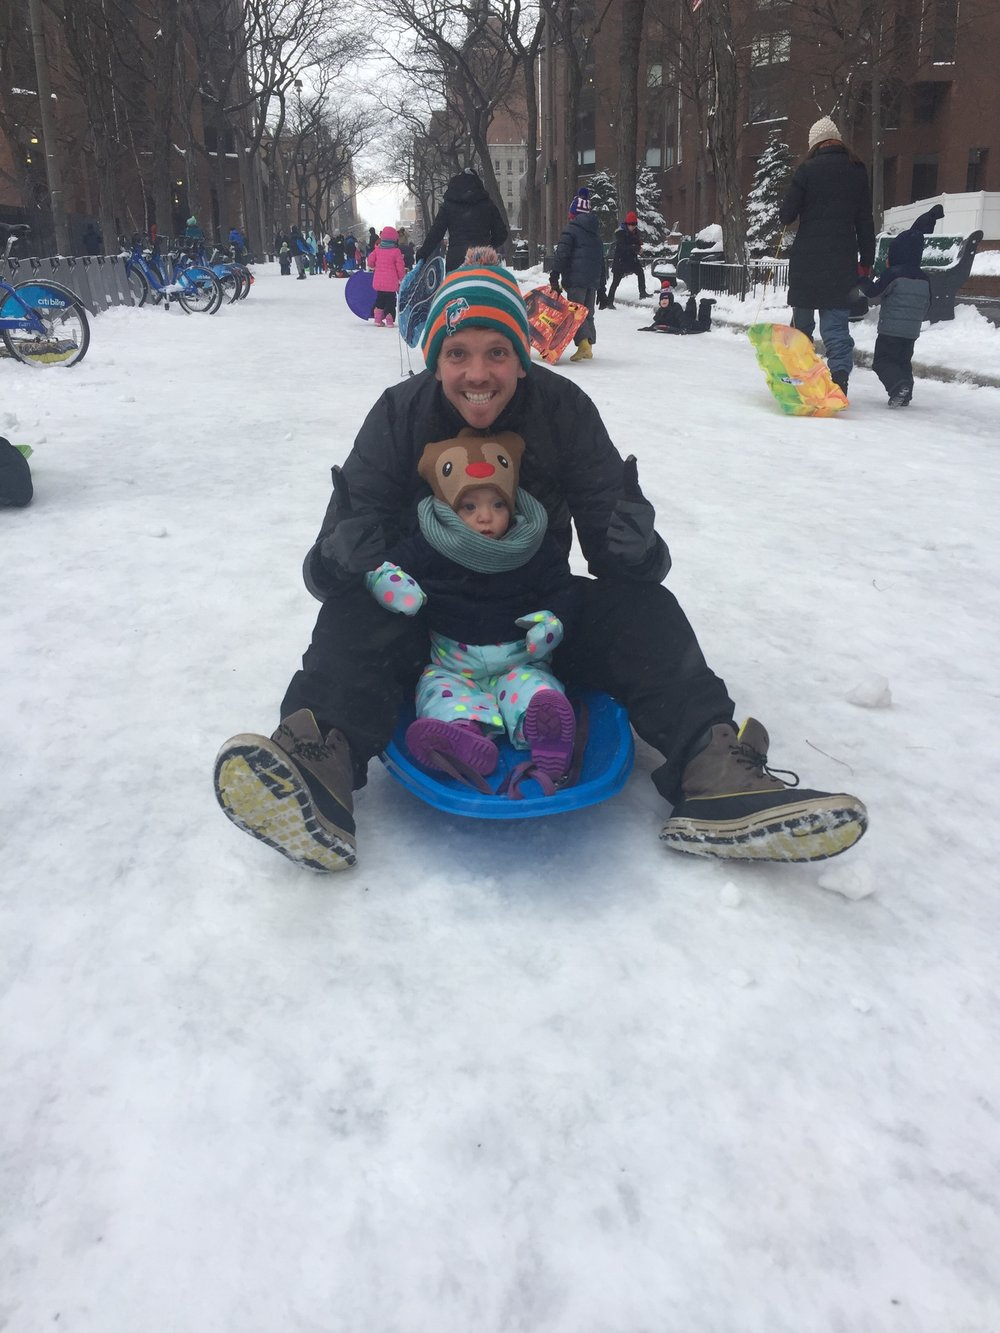 First time sledding -Lucie wasn't too sure about it.